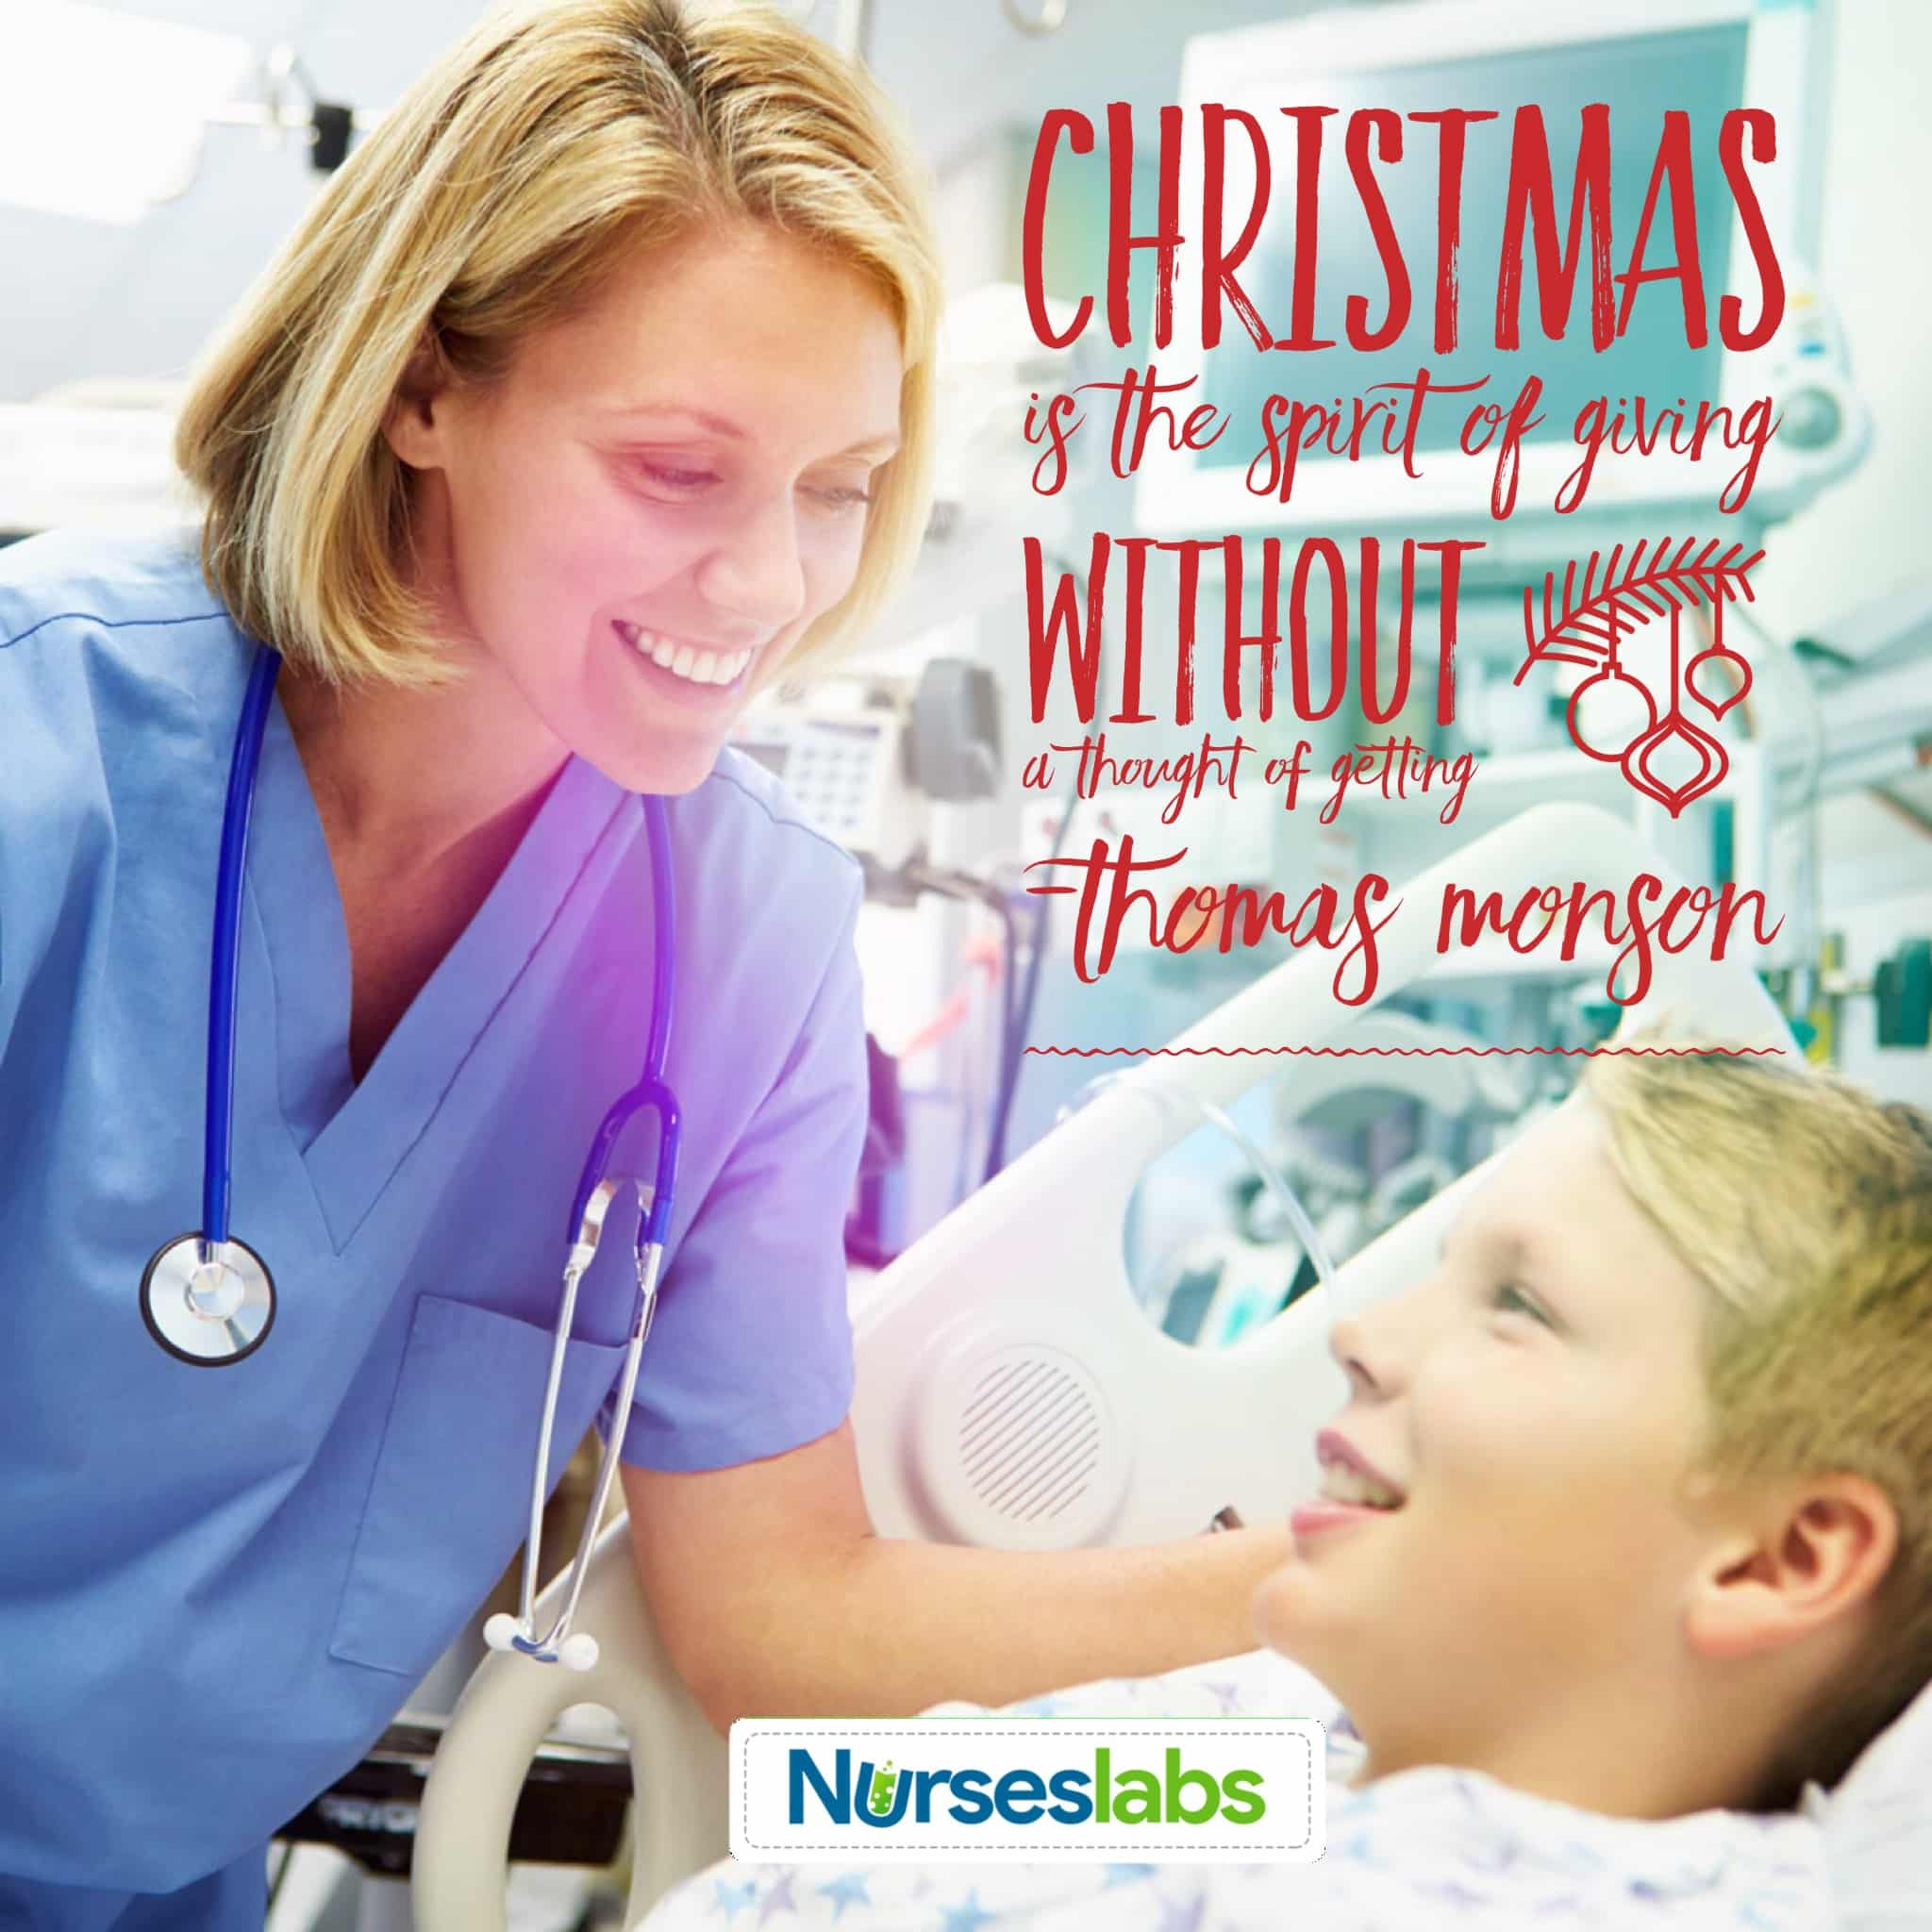 Christmas nursing quote